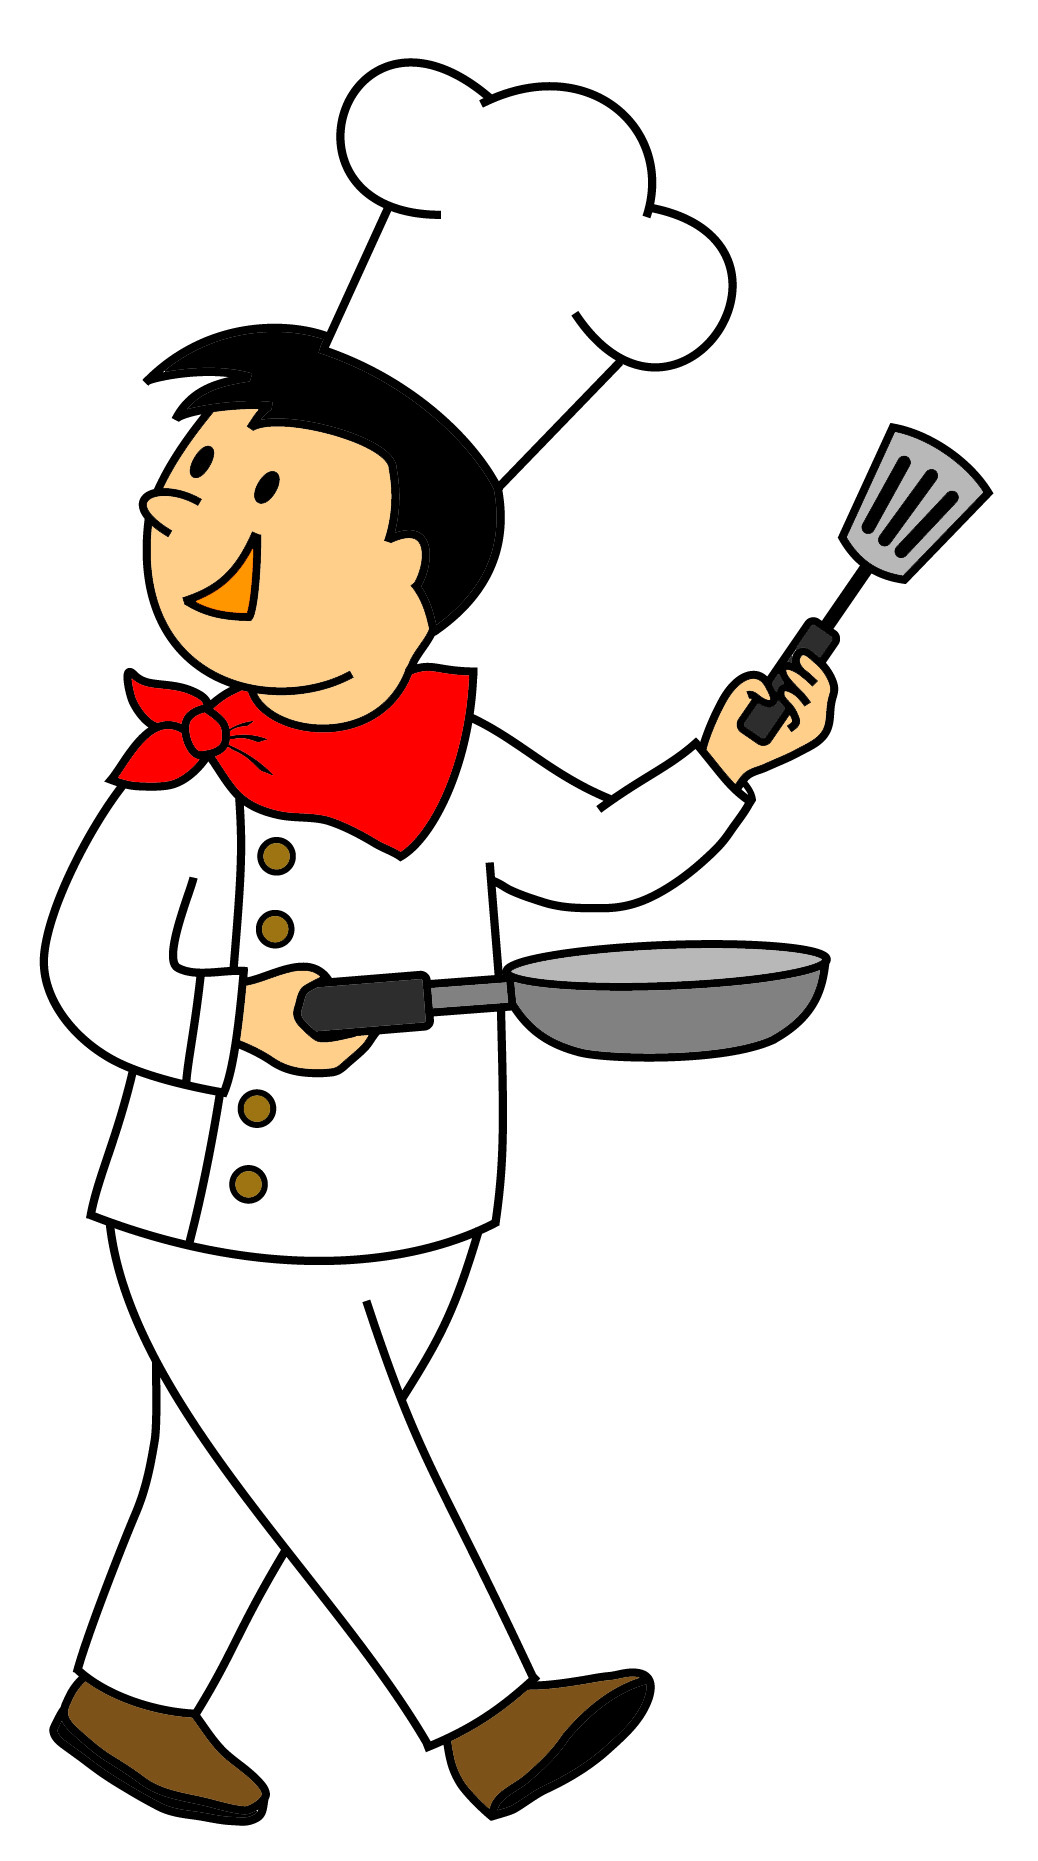 chef ok free images at clker com vector clip art online rh clker com chef clipart free cartoon chef clipart free